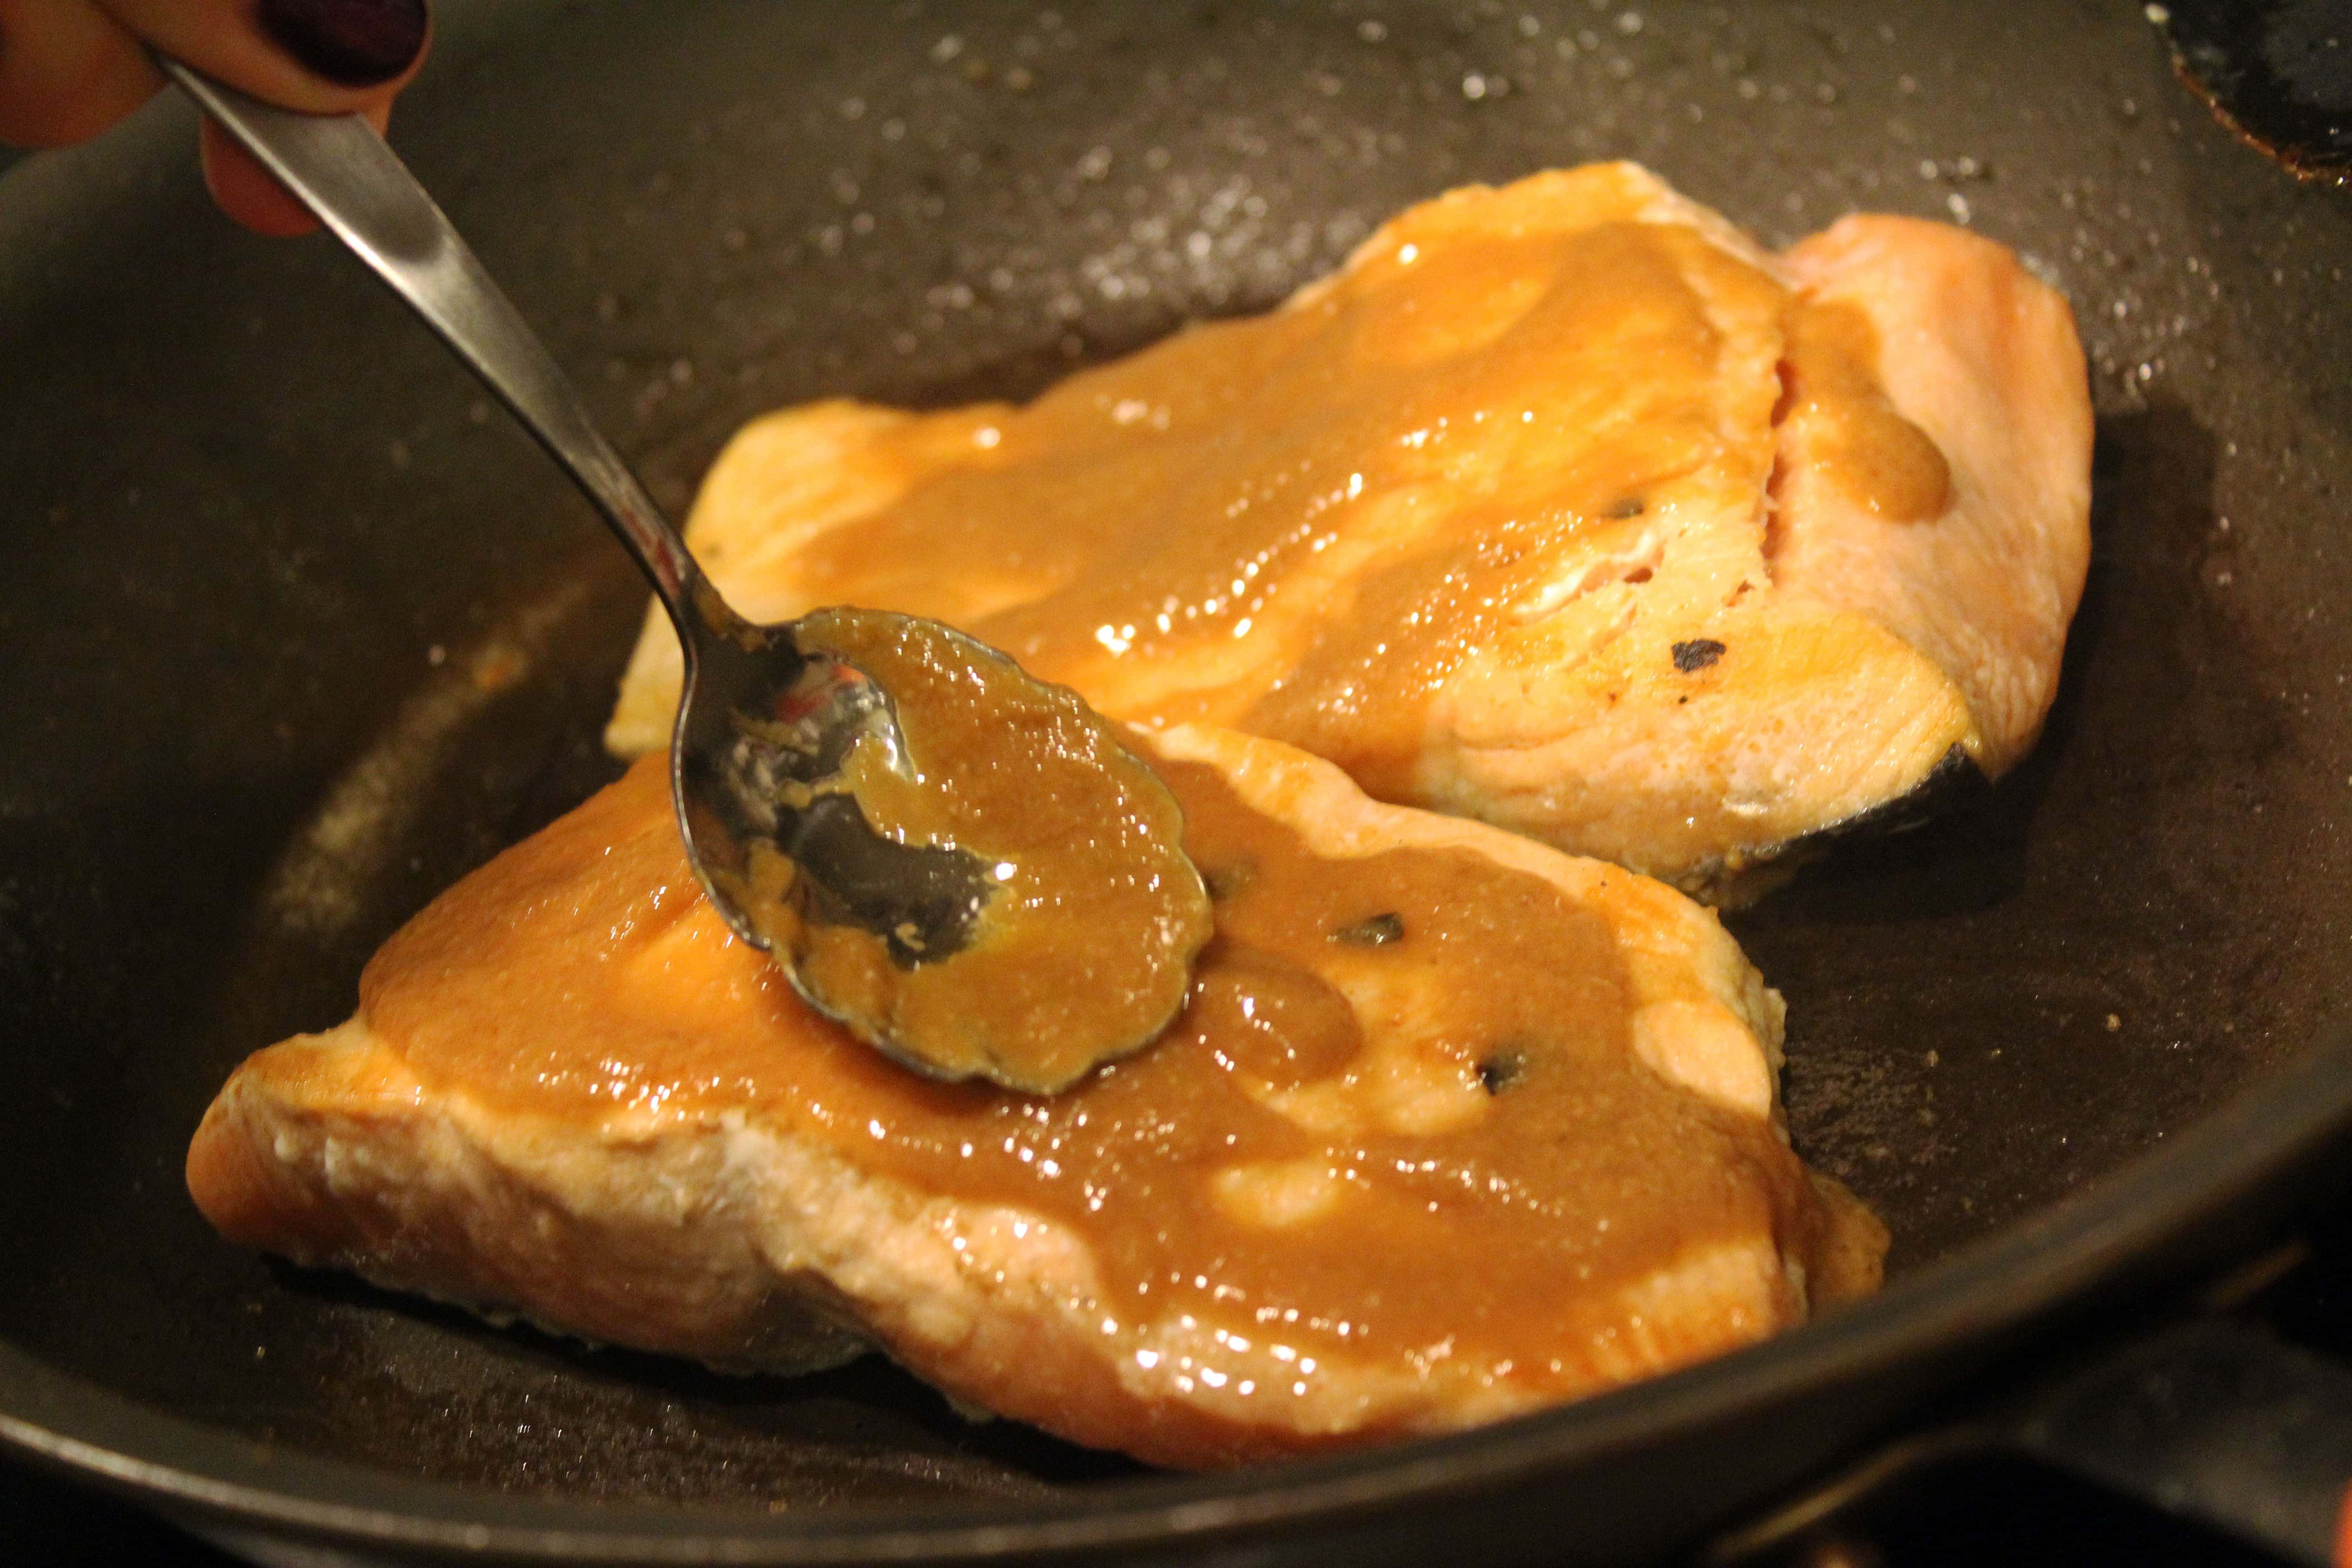 Spread sauce on top of salmon